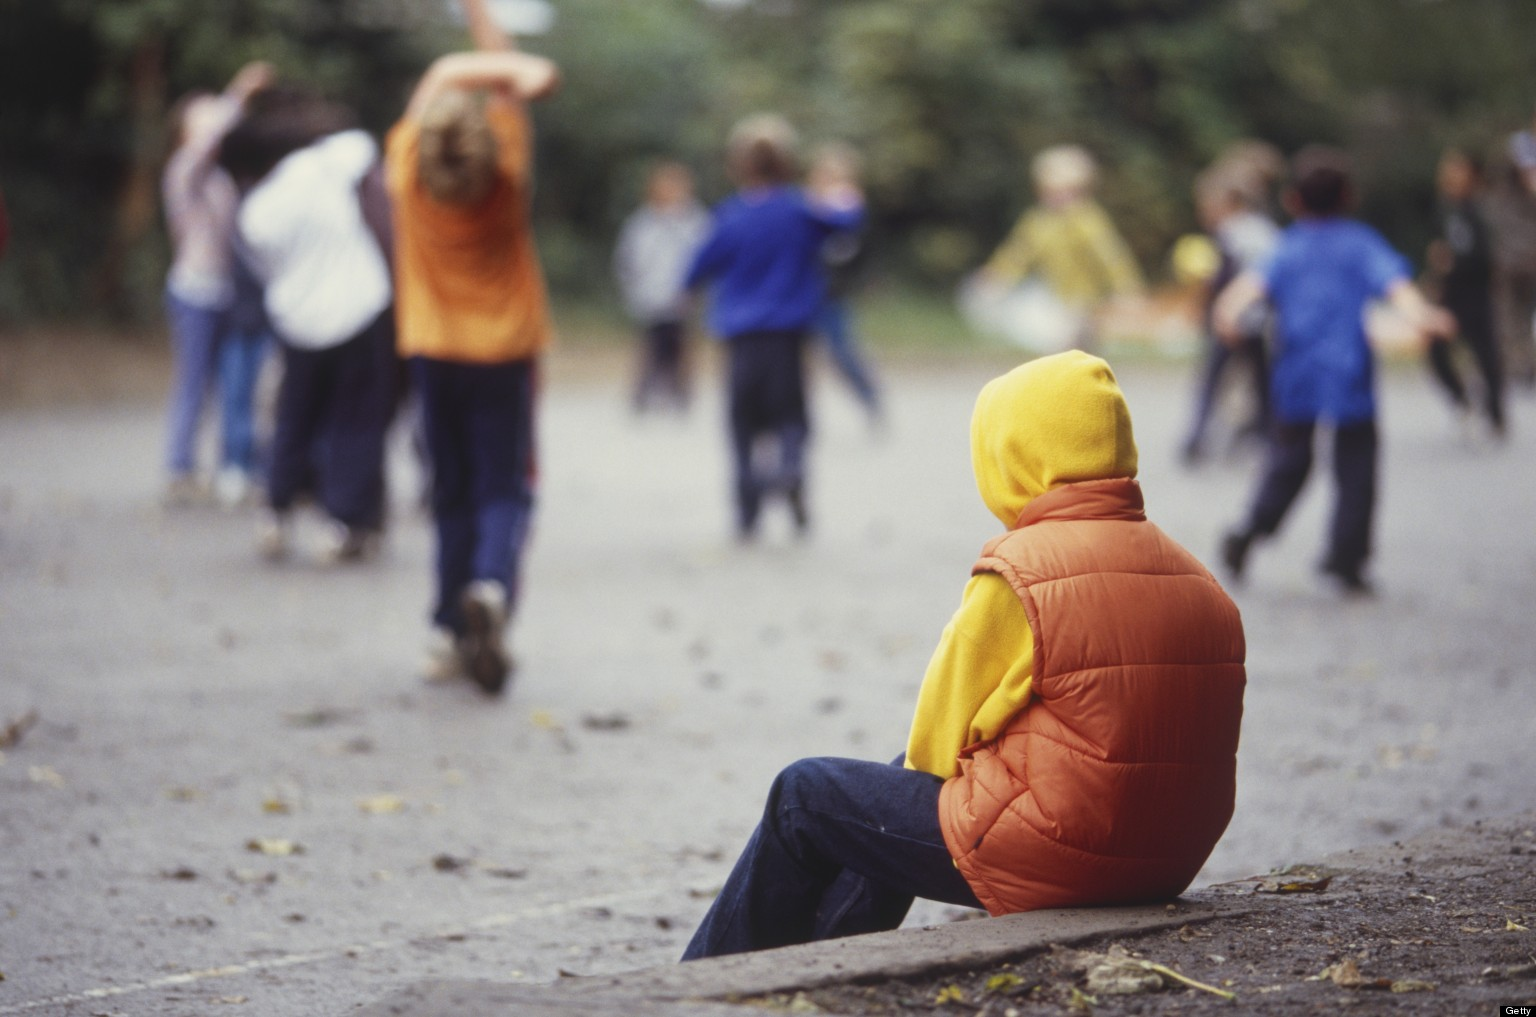 Lessons learned from neglect can harm for decades